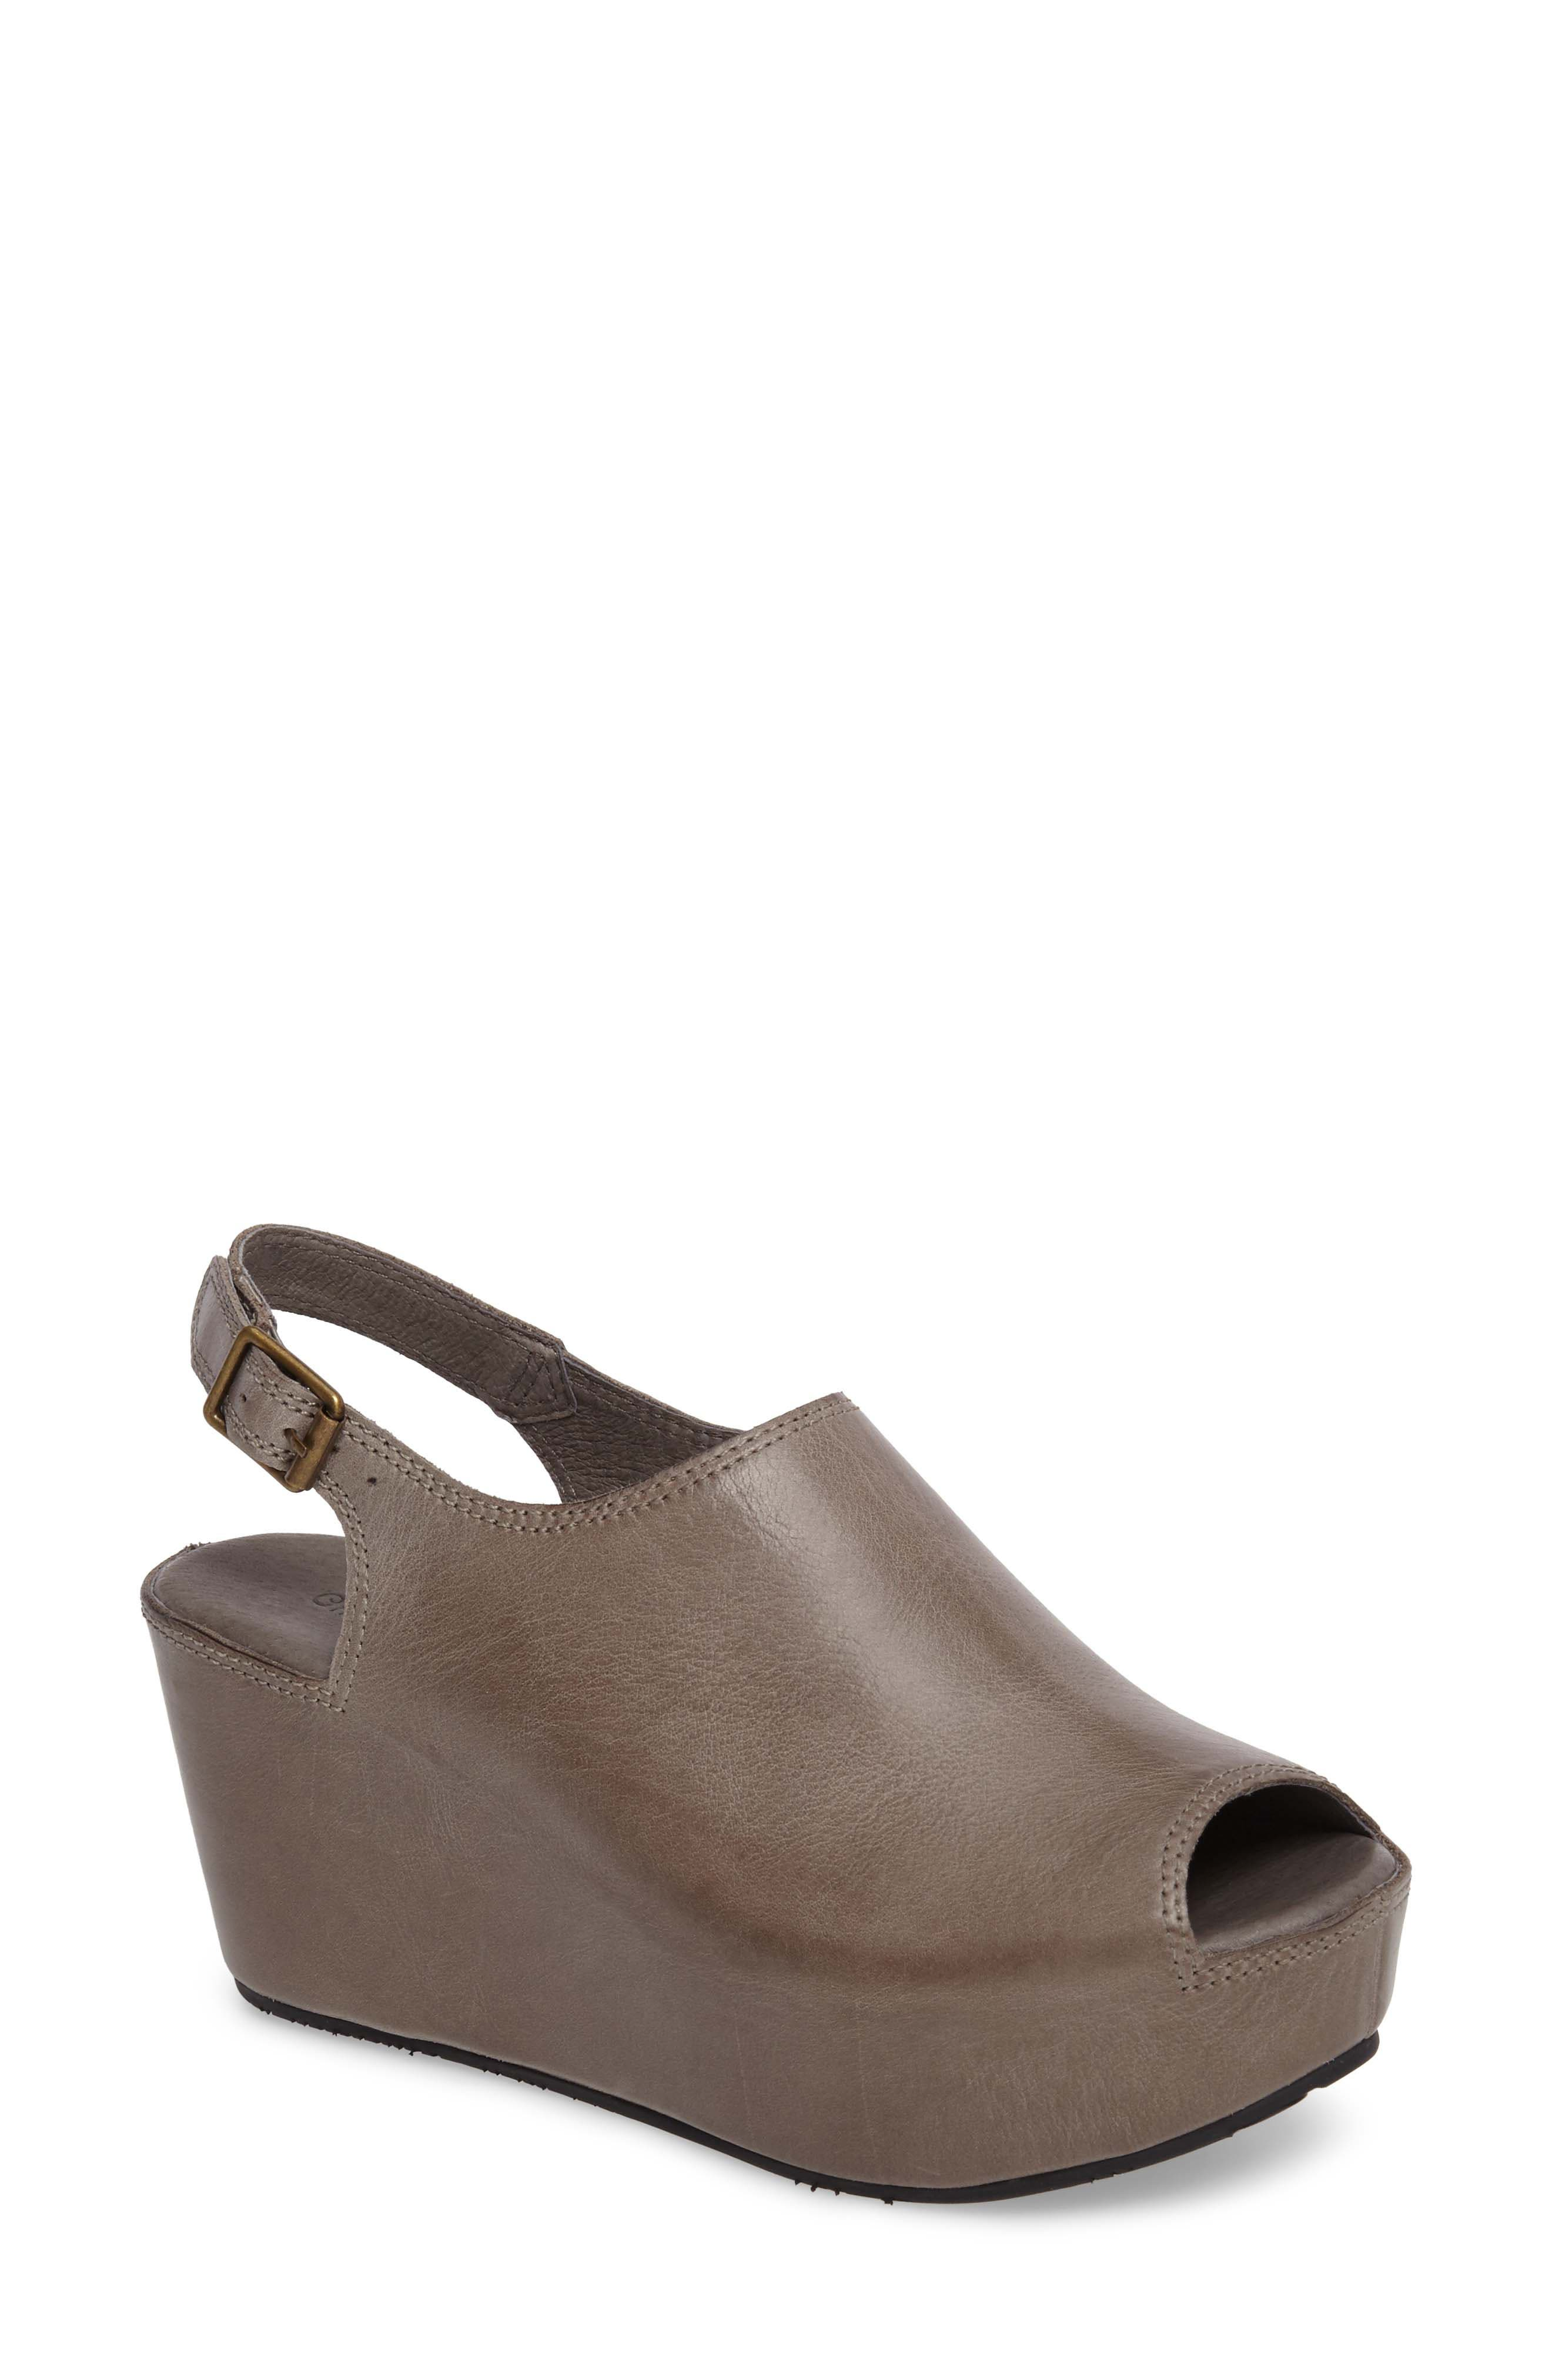 CHOCOLAT BLU Willow Slingback Wedge, Main, color, GRAPHITE LEATHER